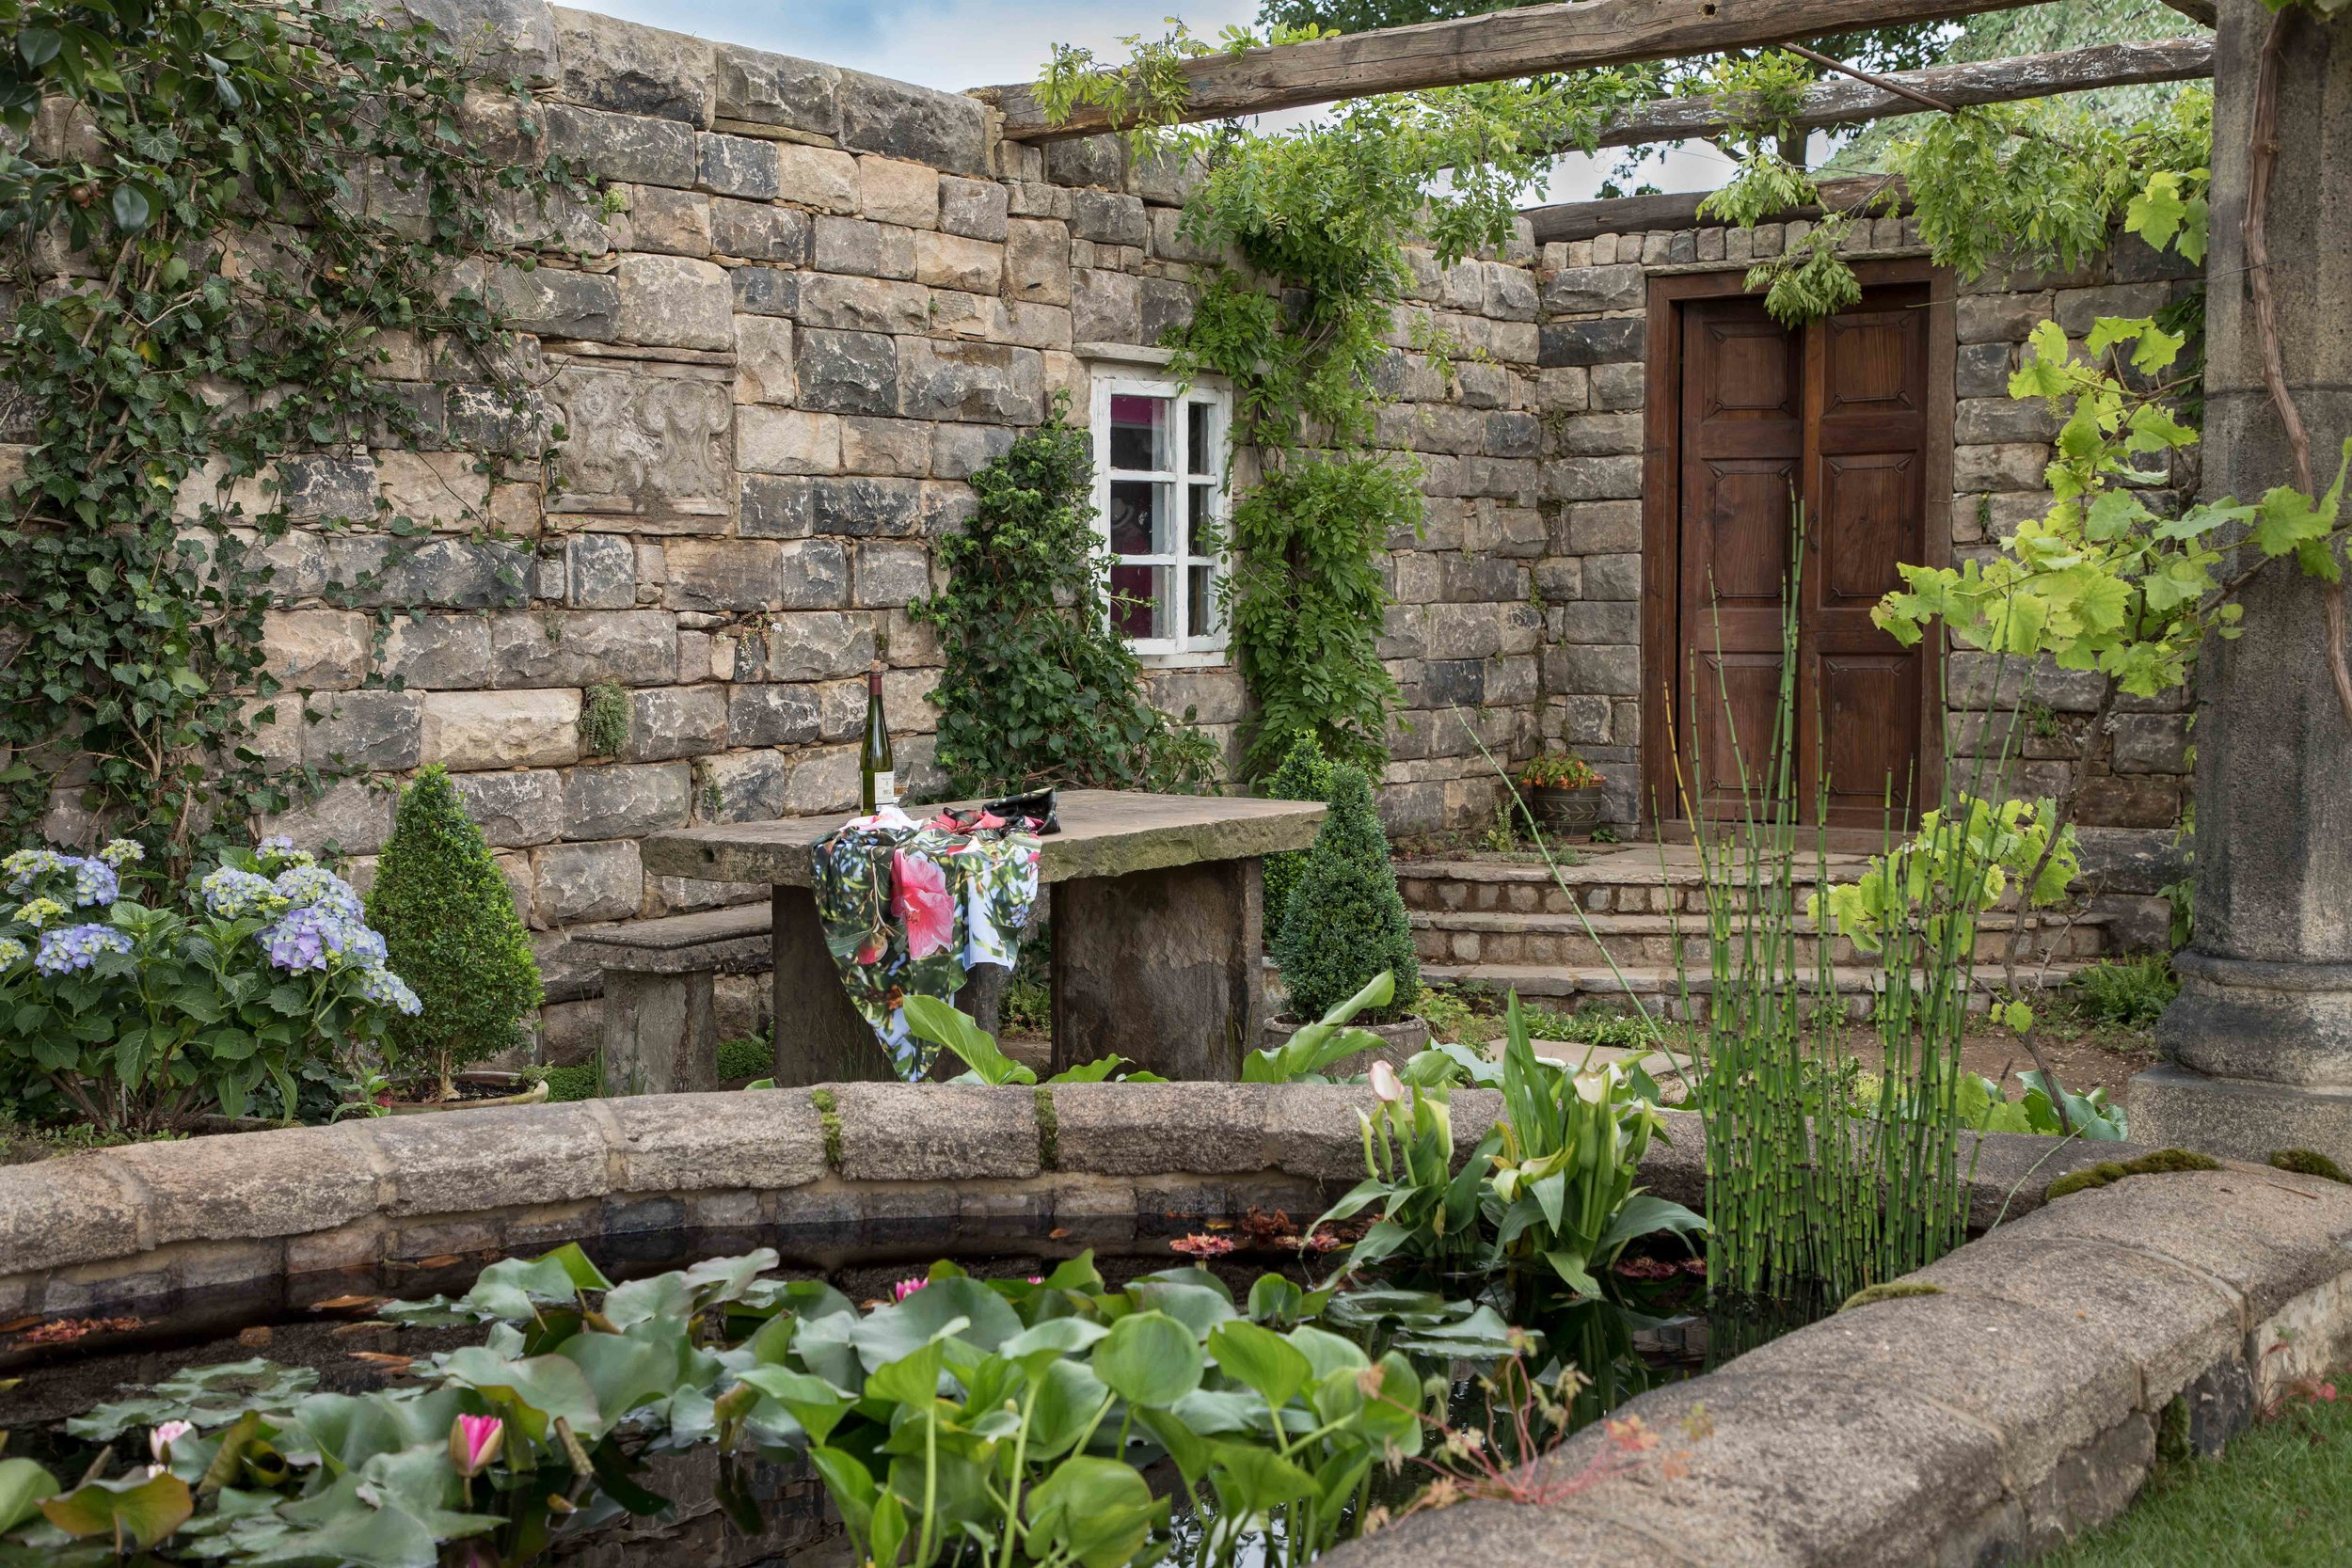 The Pazo's Secret Garden